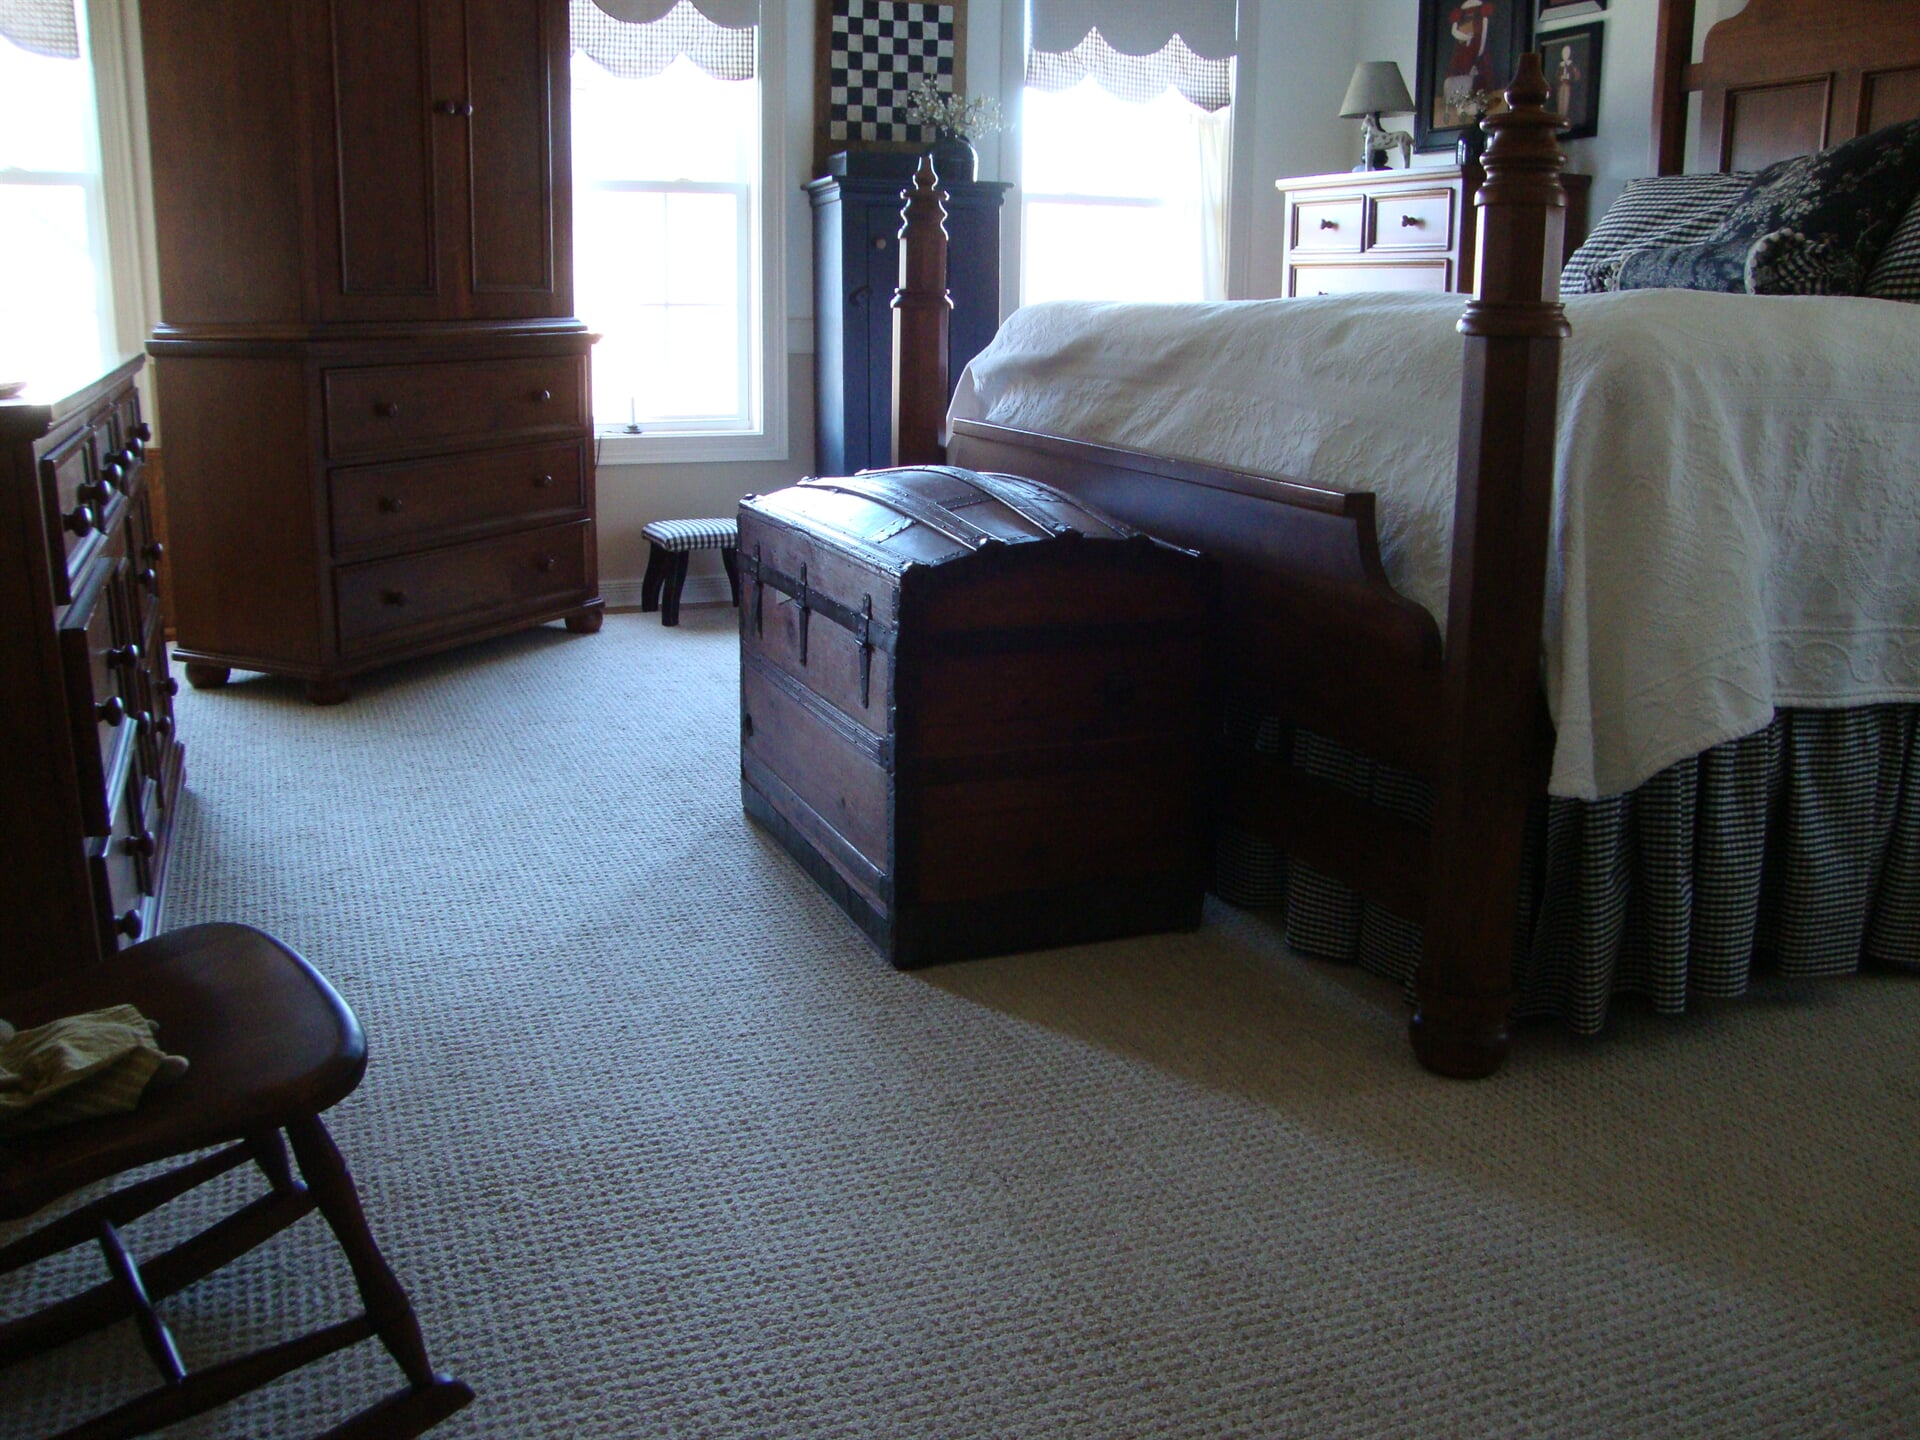 Soft bedroom carpet in Chesapeake, VA from Floors Unlimited